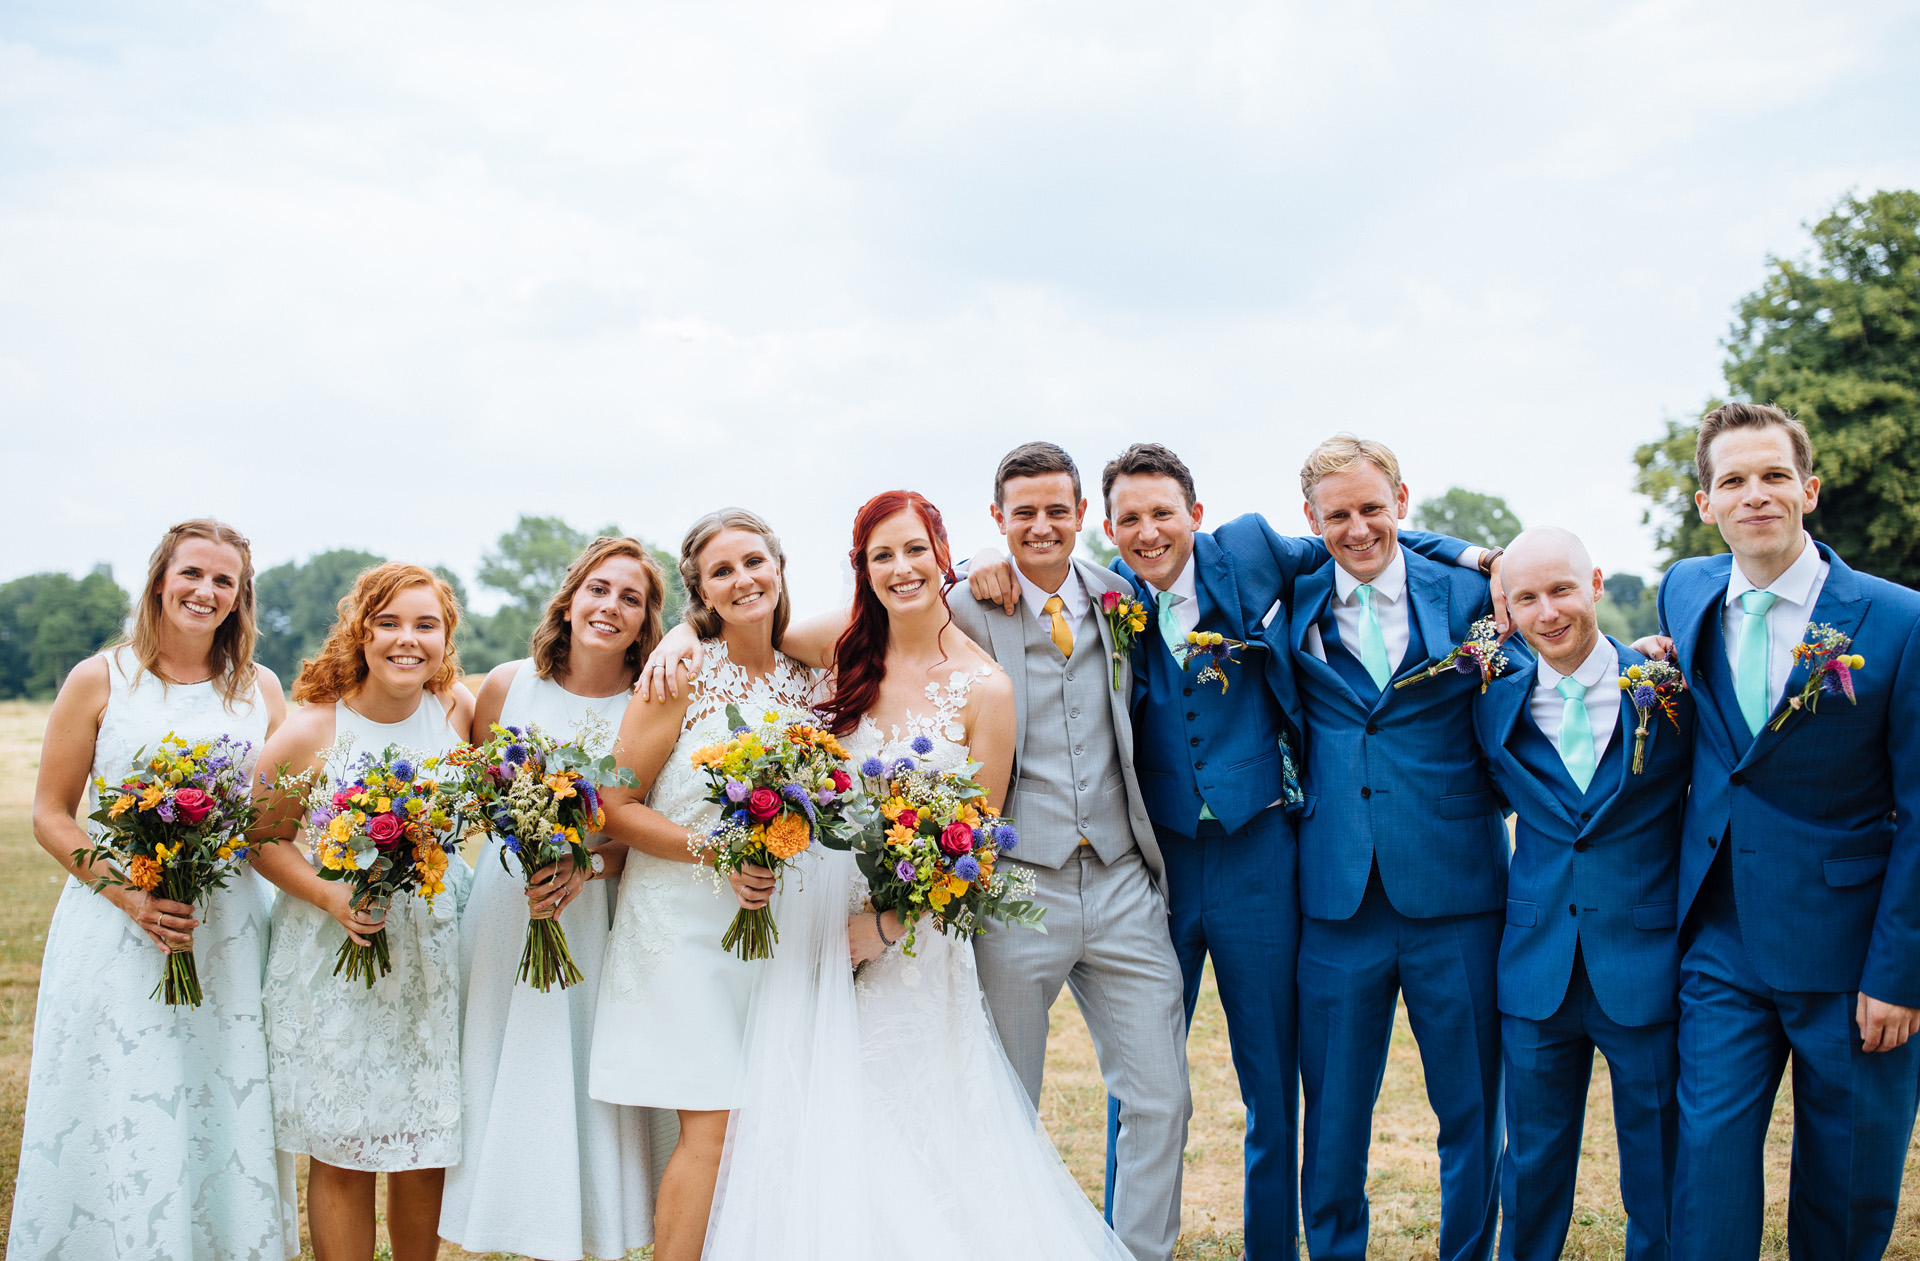 bride and groom with bridal party at syon park wedding